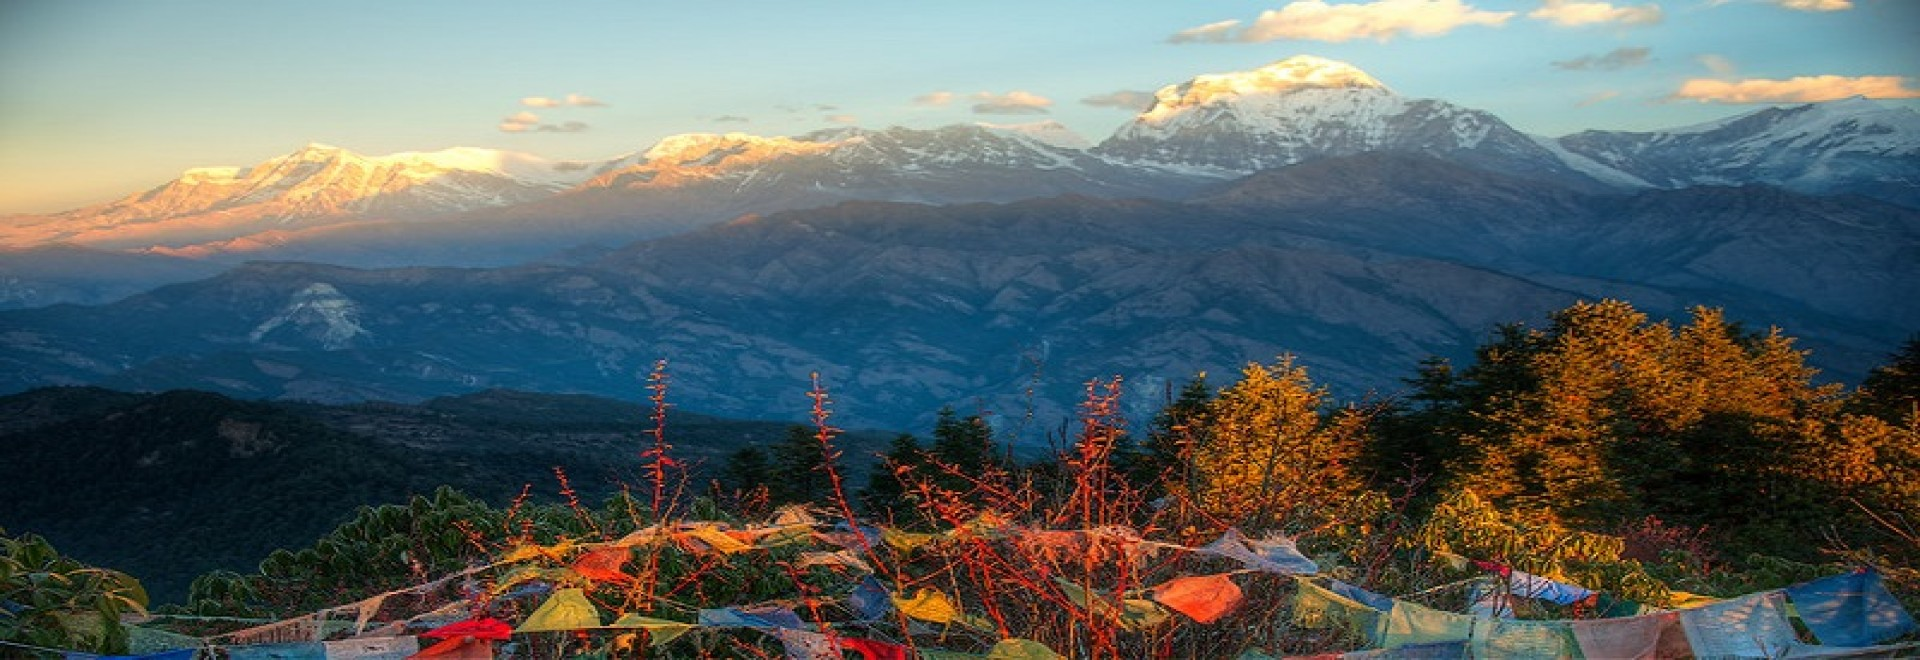 NEPAL TREKKING ROUTES – COMPLETE OVERVIEW OF TREKS IN NEPAL